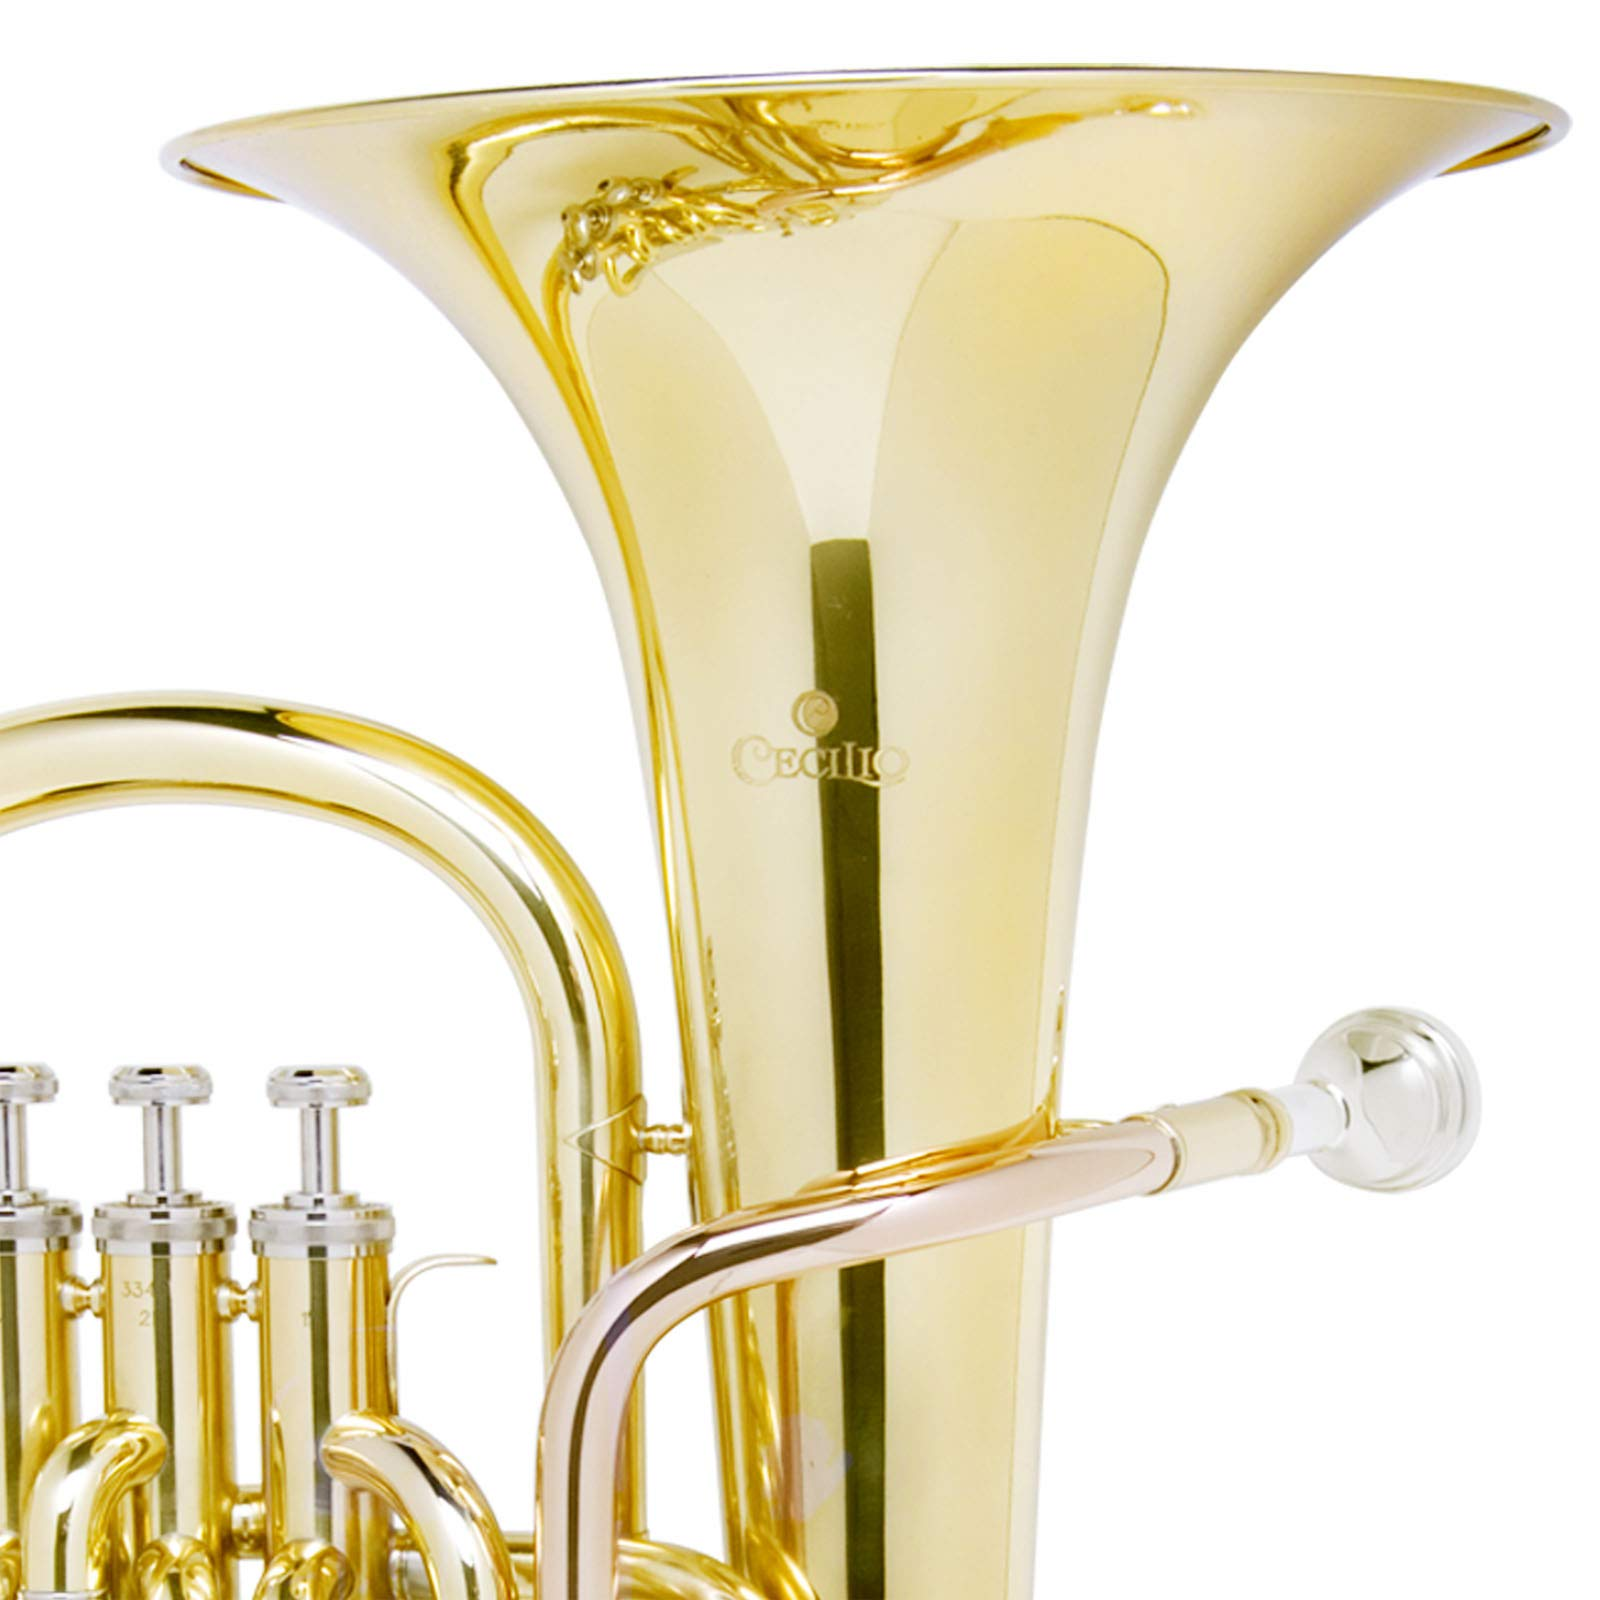 Mendini B Flat Baritone with Stainless Steel Pistons (Intermediate) by Mendini by Cecilio (Image #5)